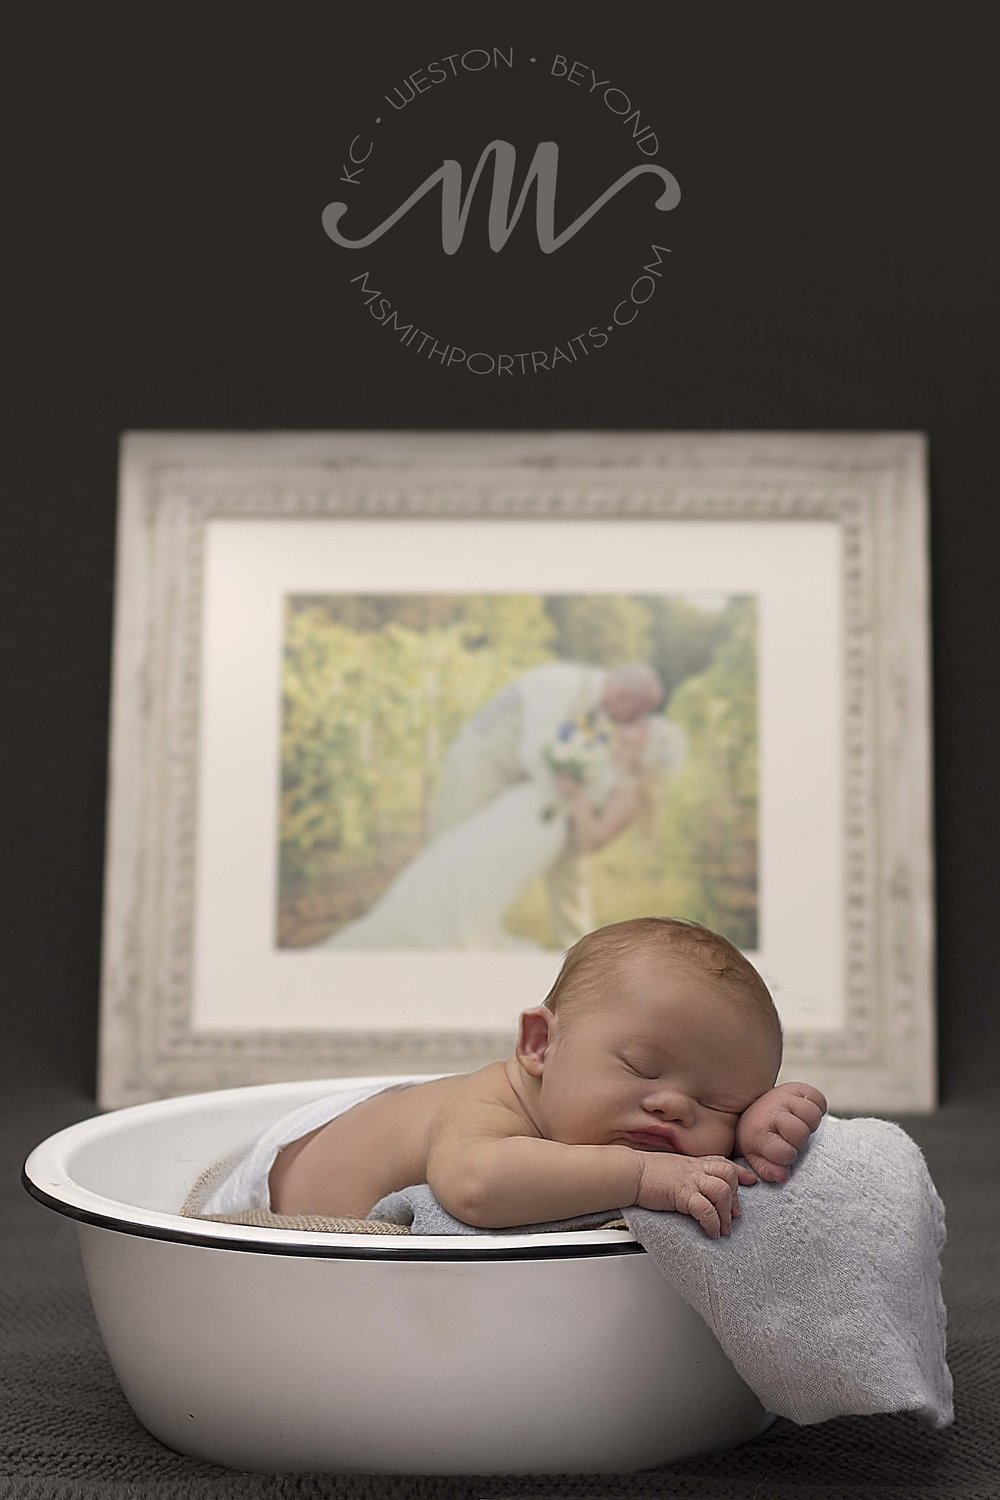 Newborn boy with parents' wedding photo